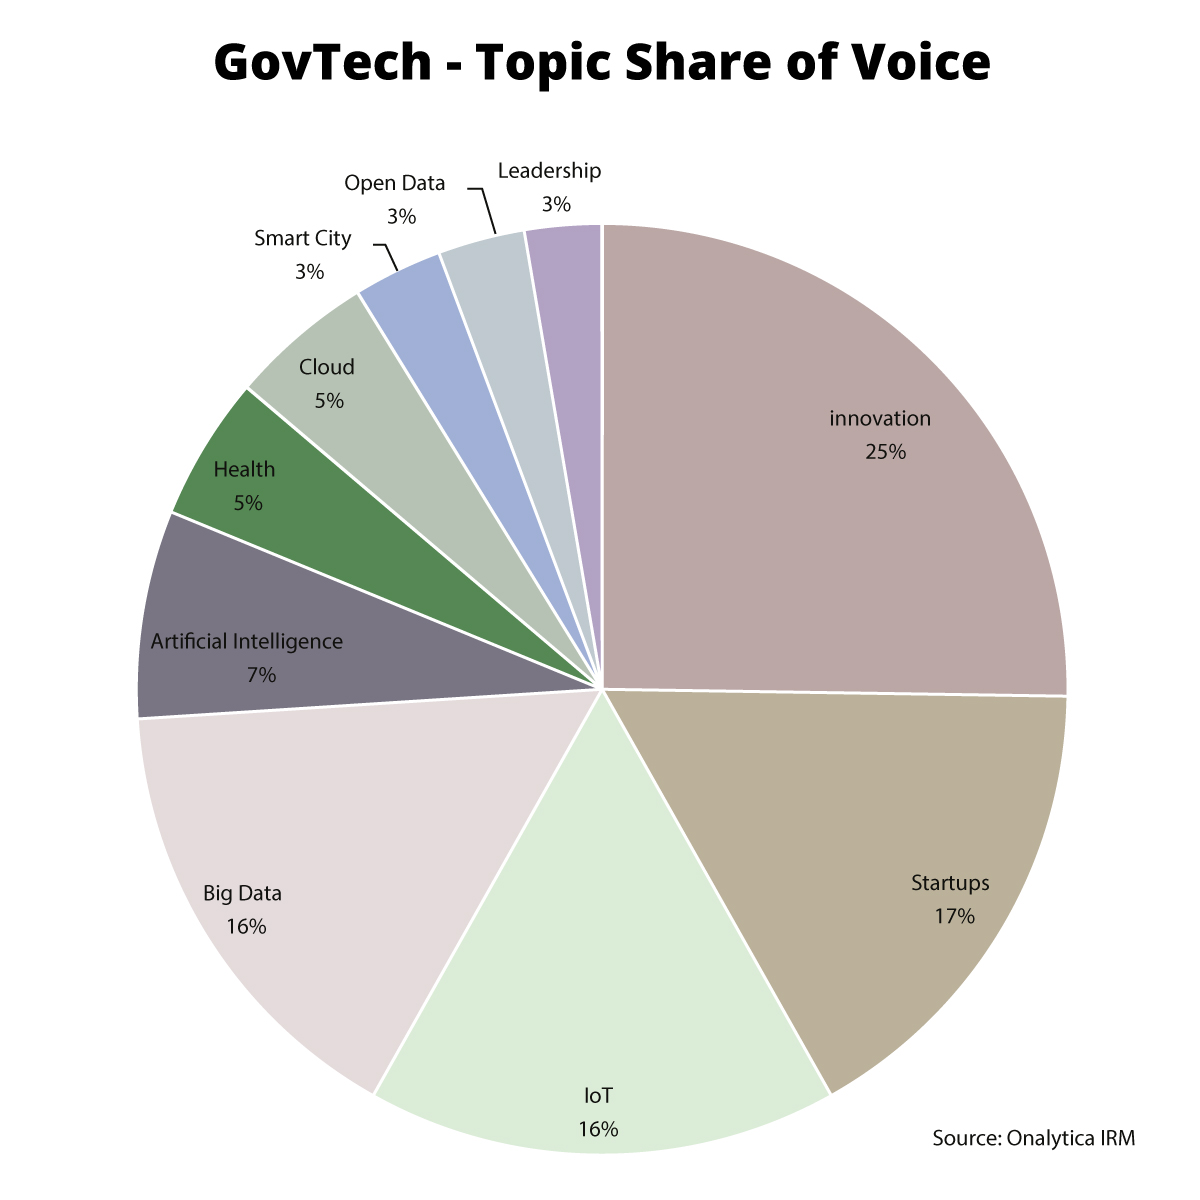 Onalytica - GovTech Top 100 Influencers and Brands - Topic Share of Voice